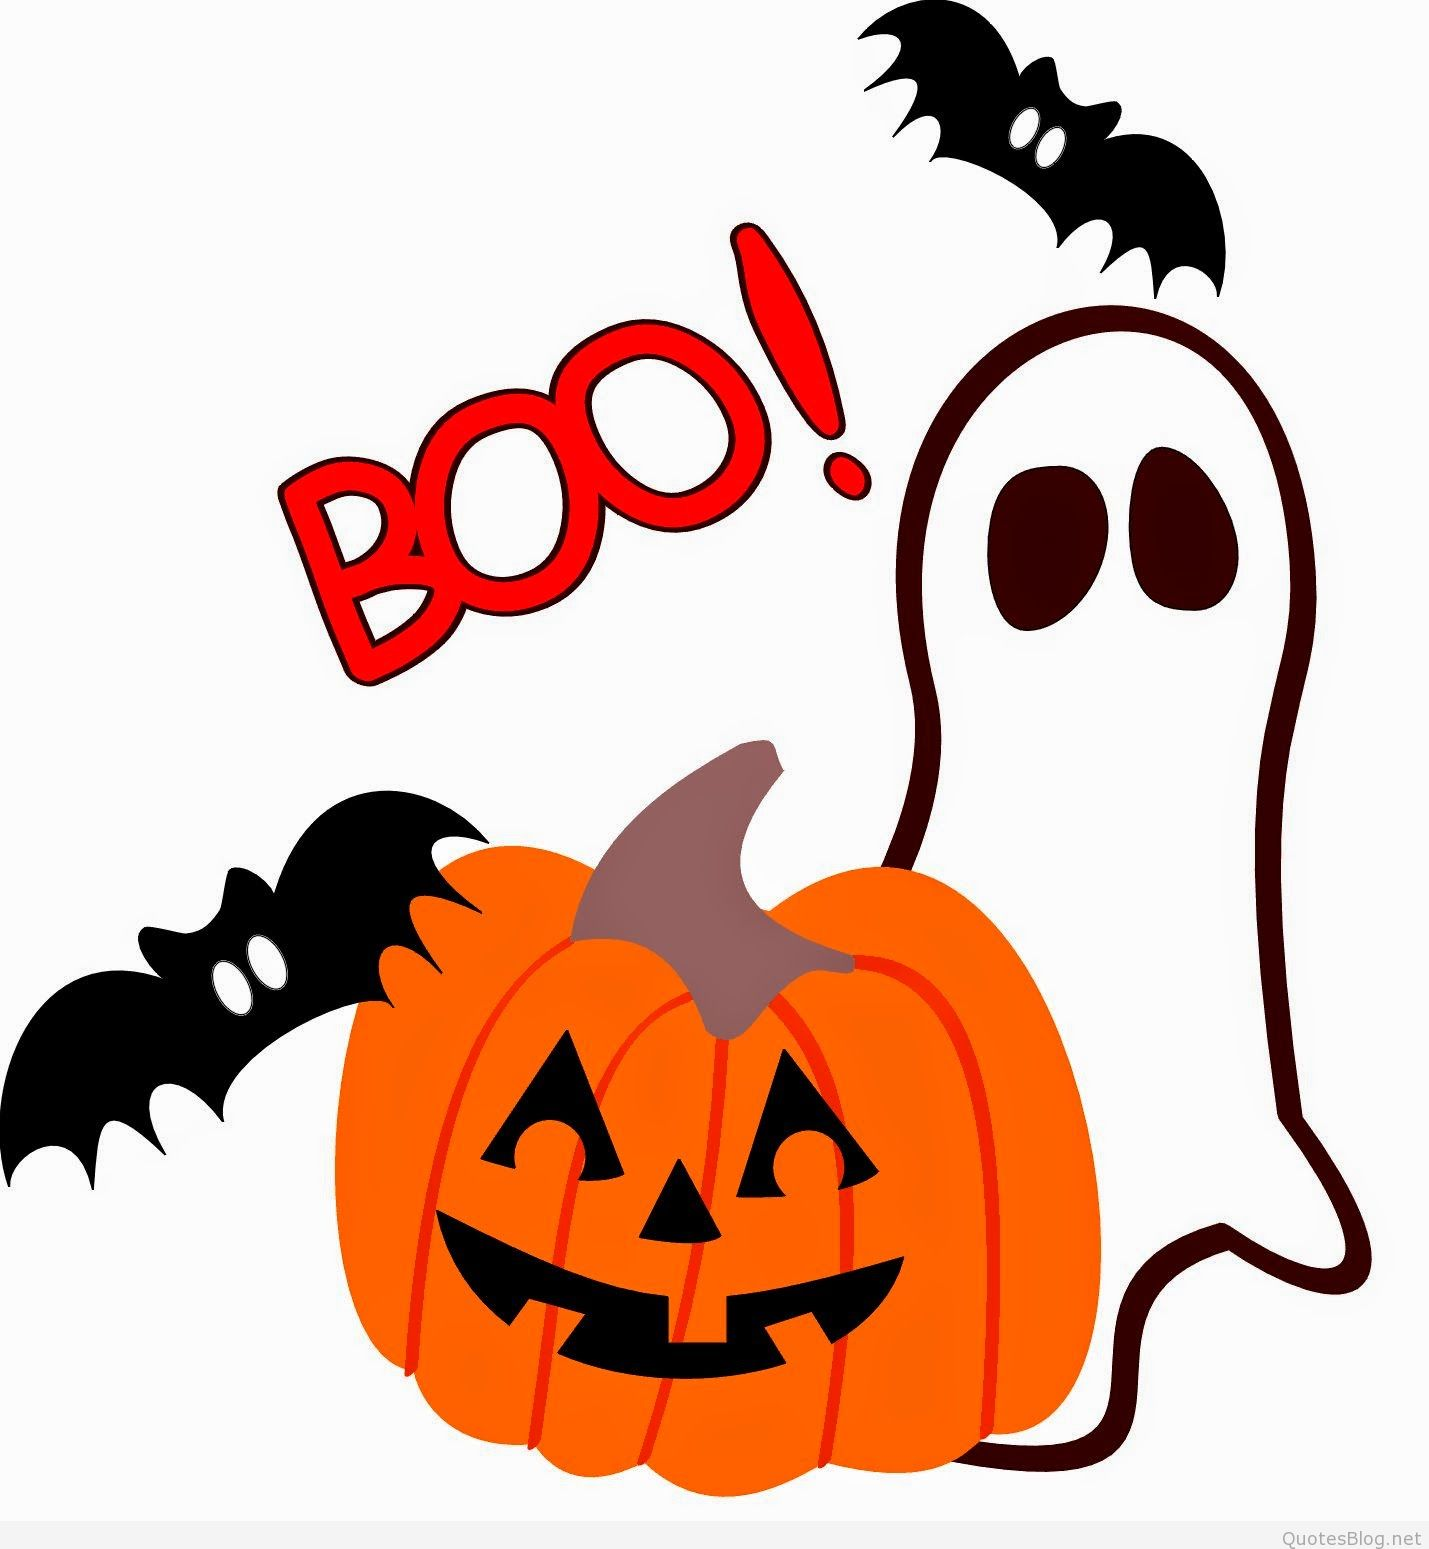 Funny Cute Happy Halloween Wishes Cartoons for kids.